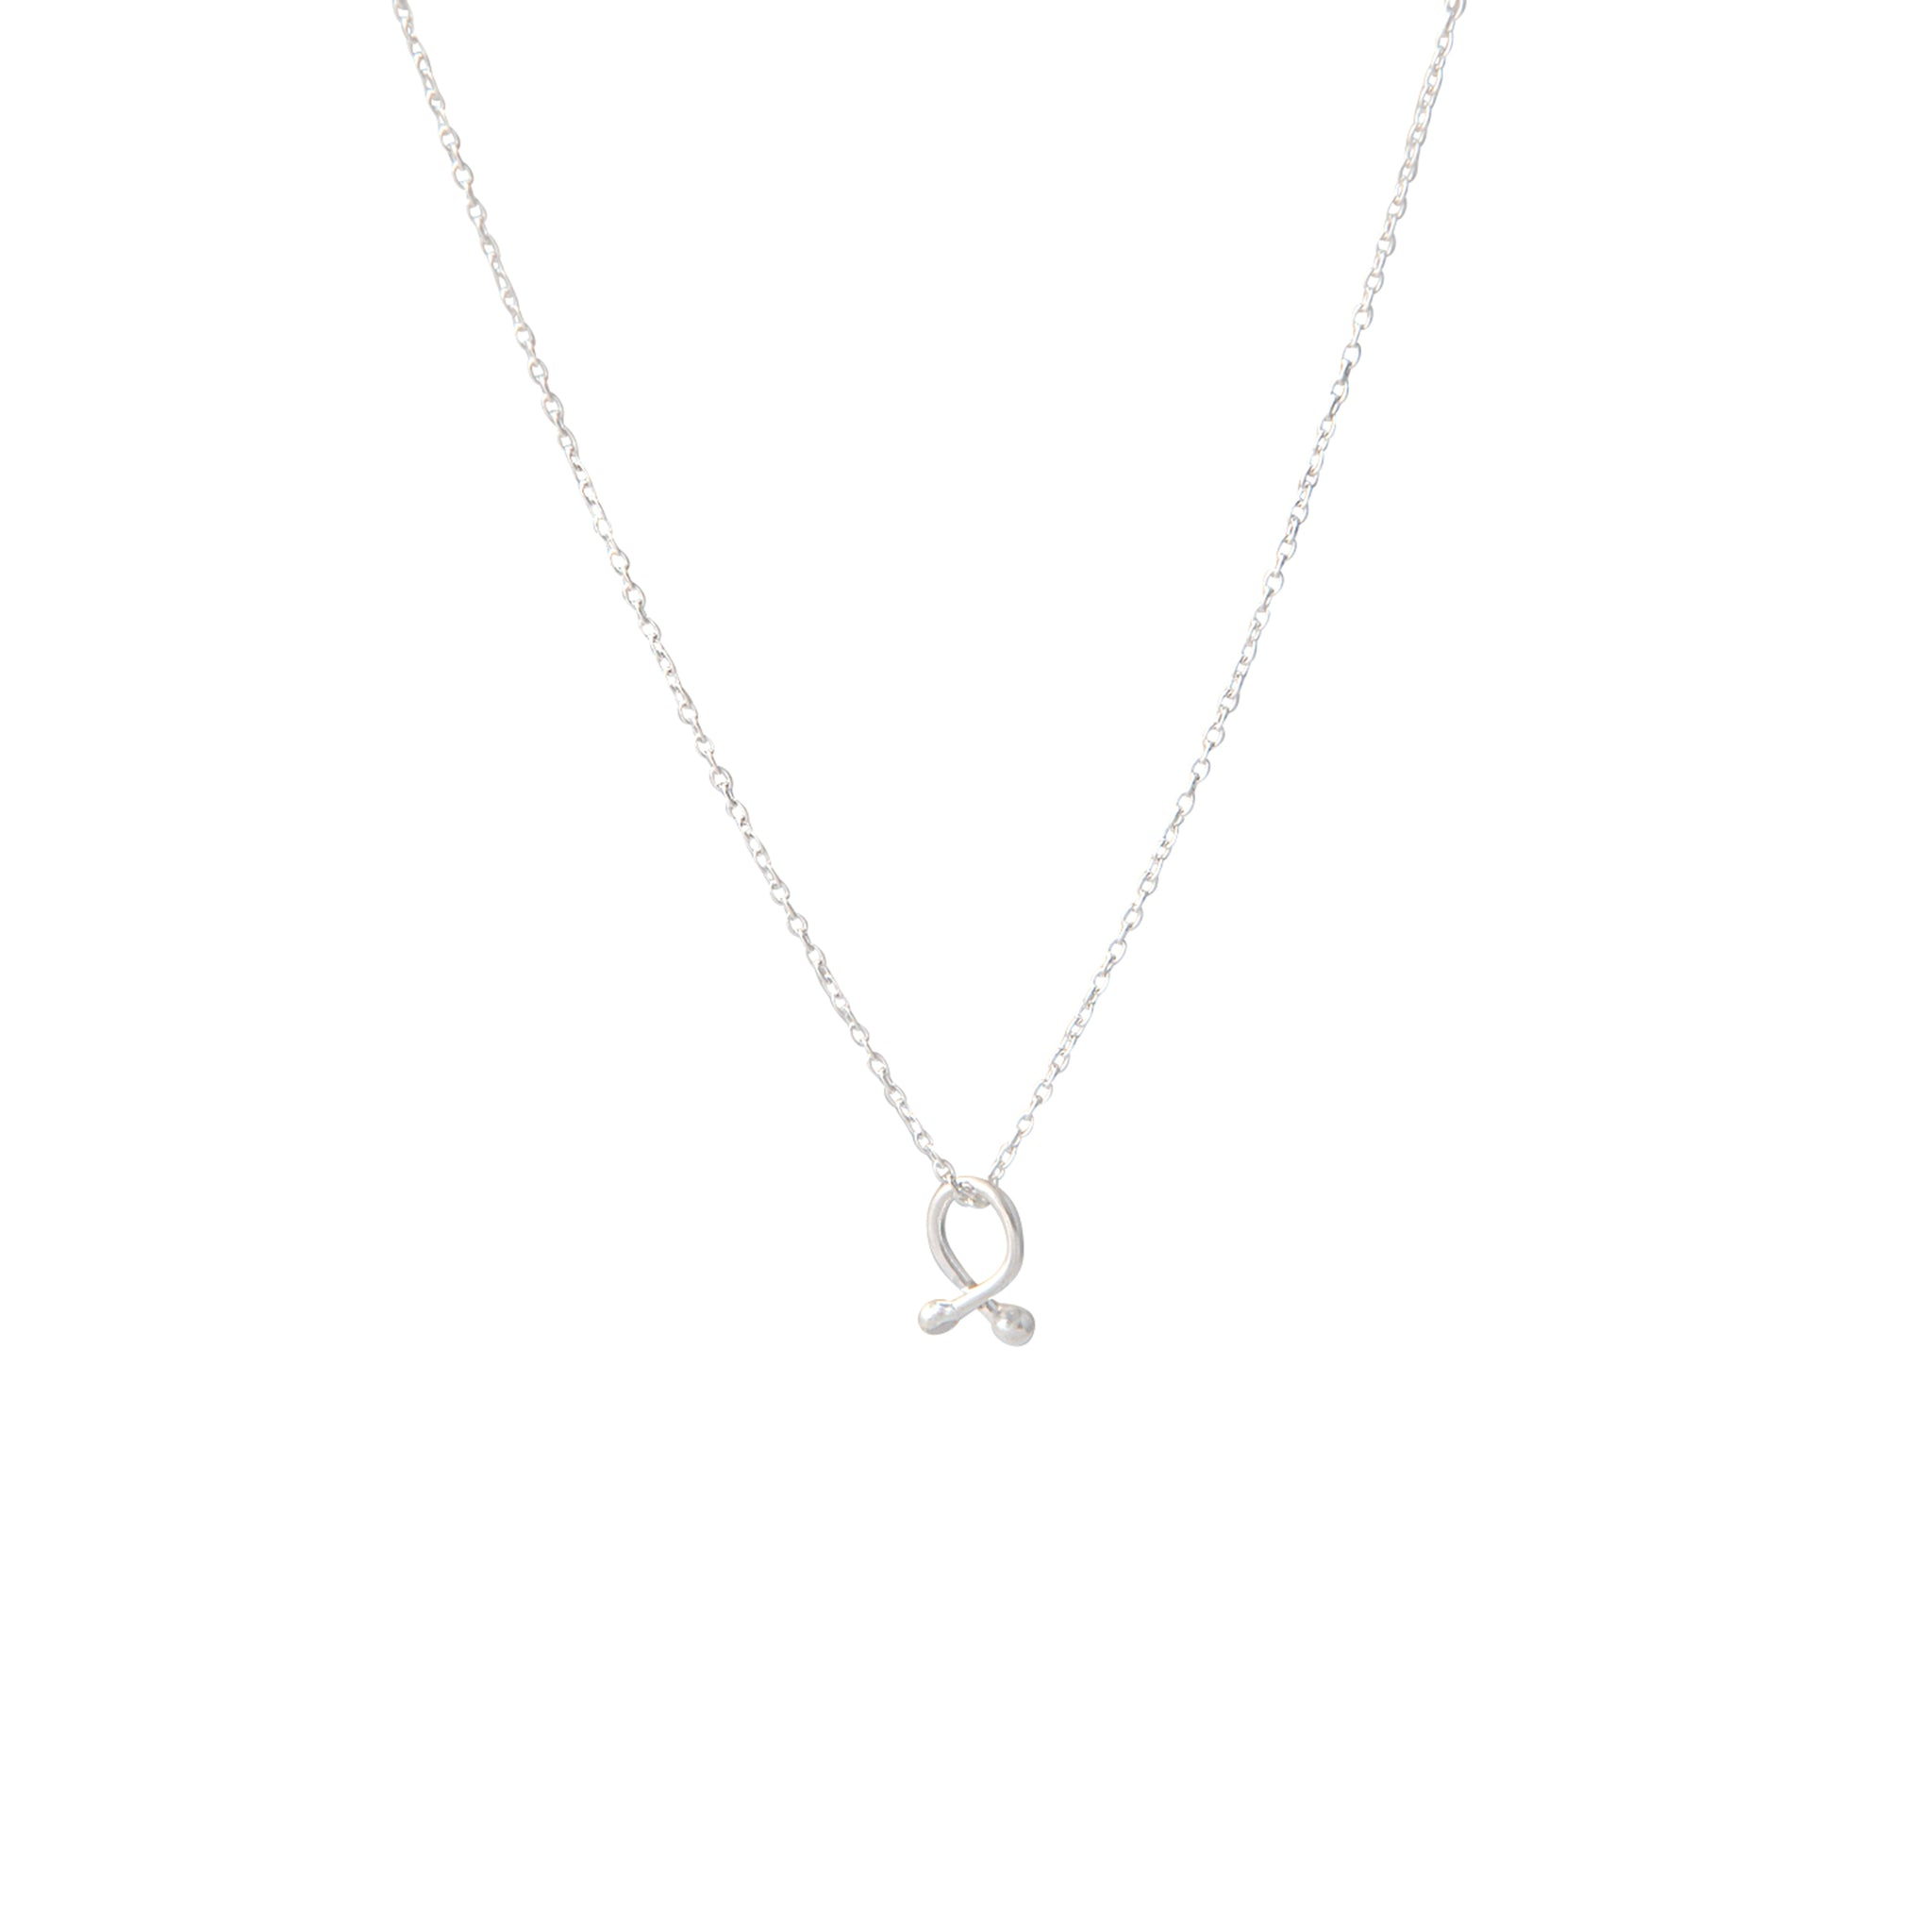 Tiny Knot Sterling Silver Necklace